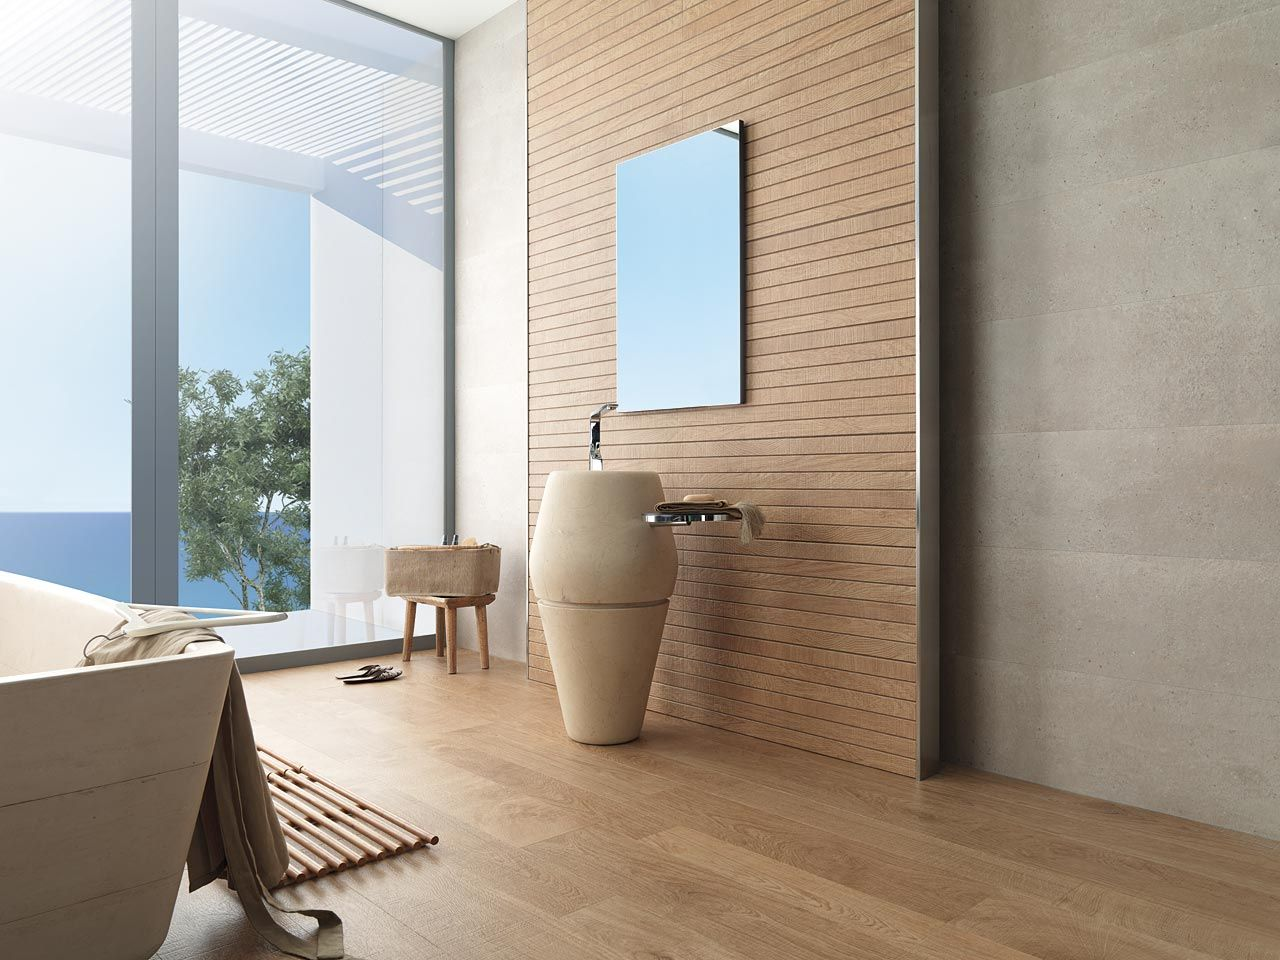 Allways cabin contemporary bathroom perth by ceramo tiles - Porcelanosa Liston Oxford Natural Timber Panelling Look Tile Available To Order In At Ceramo